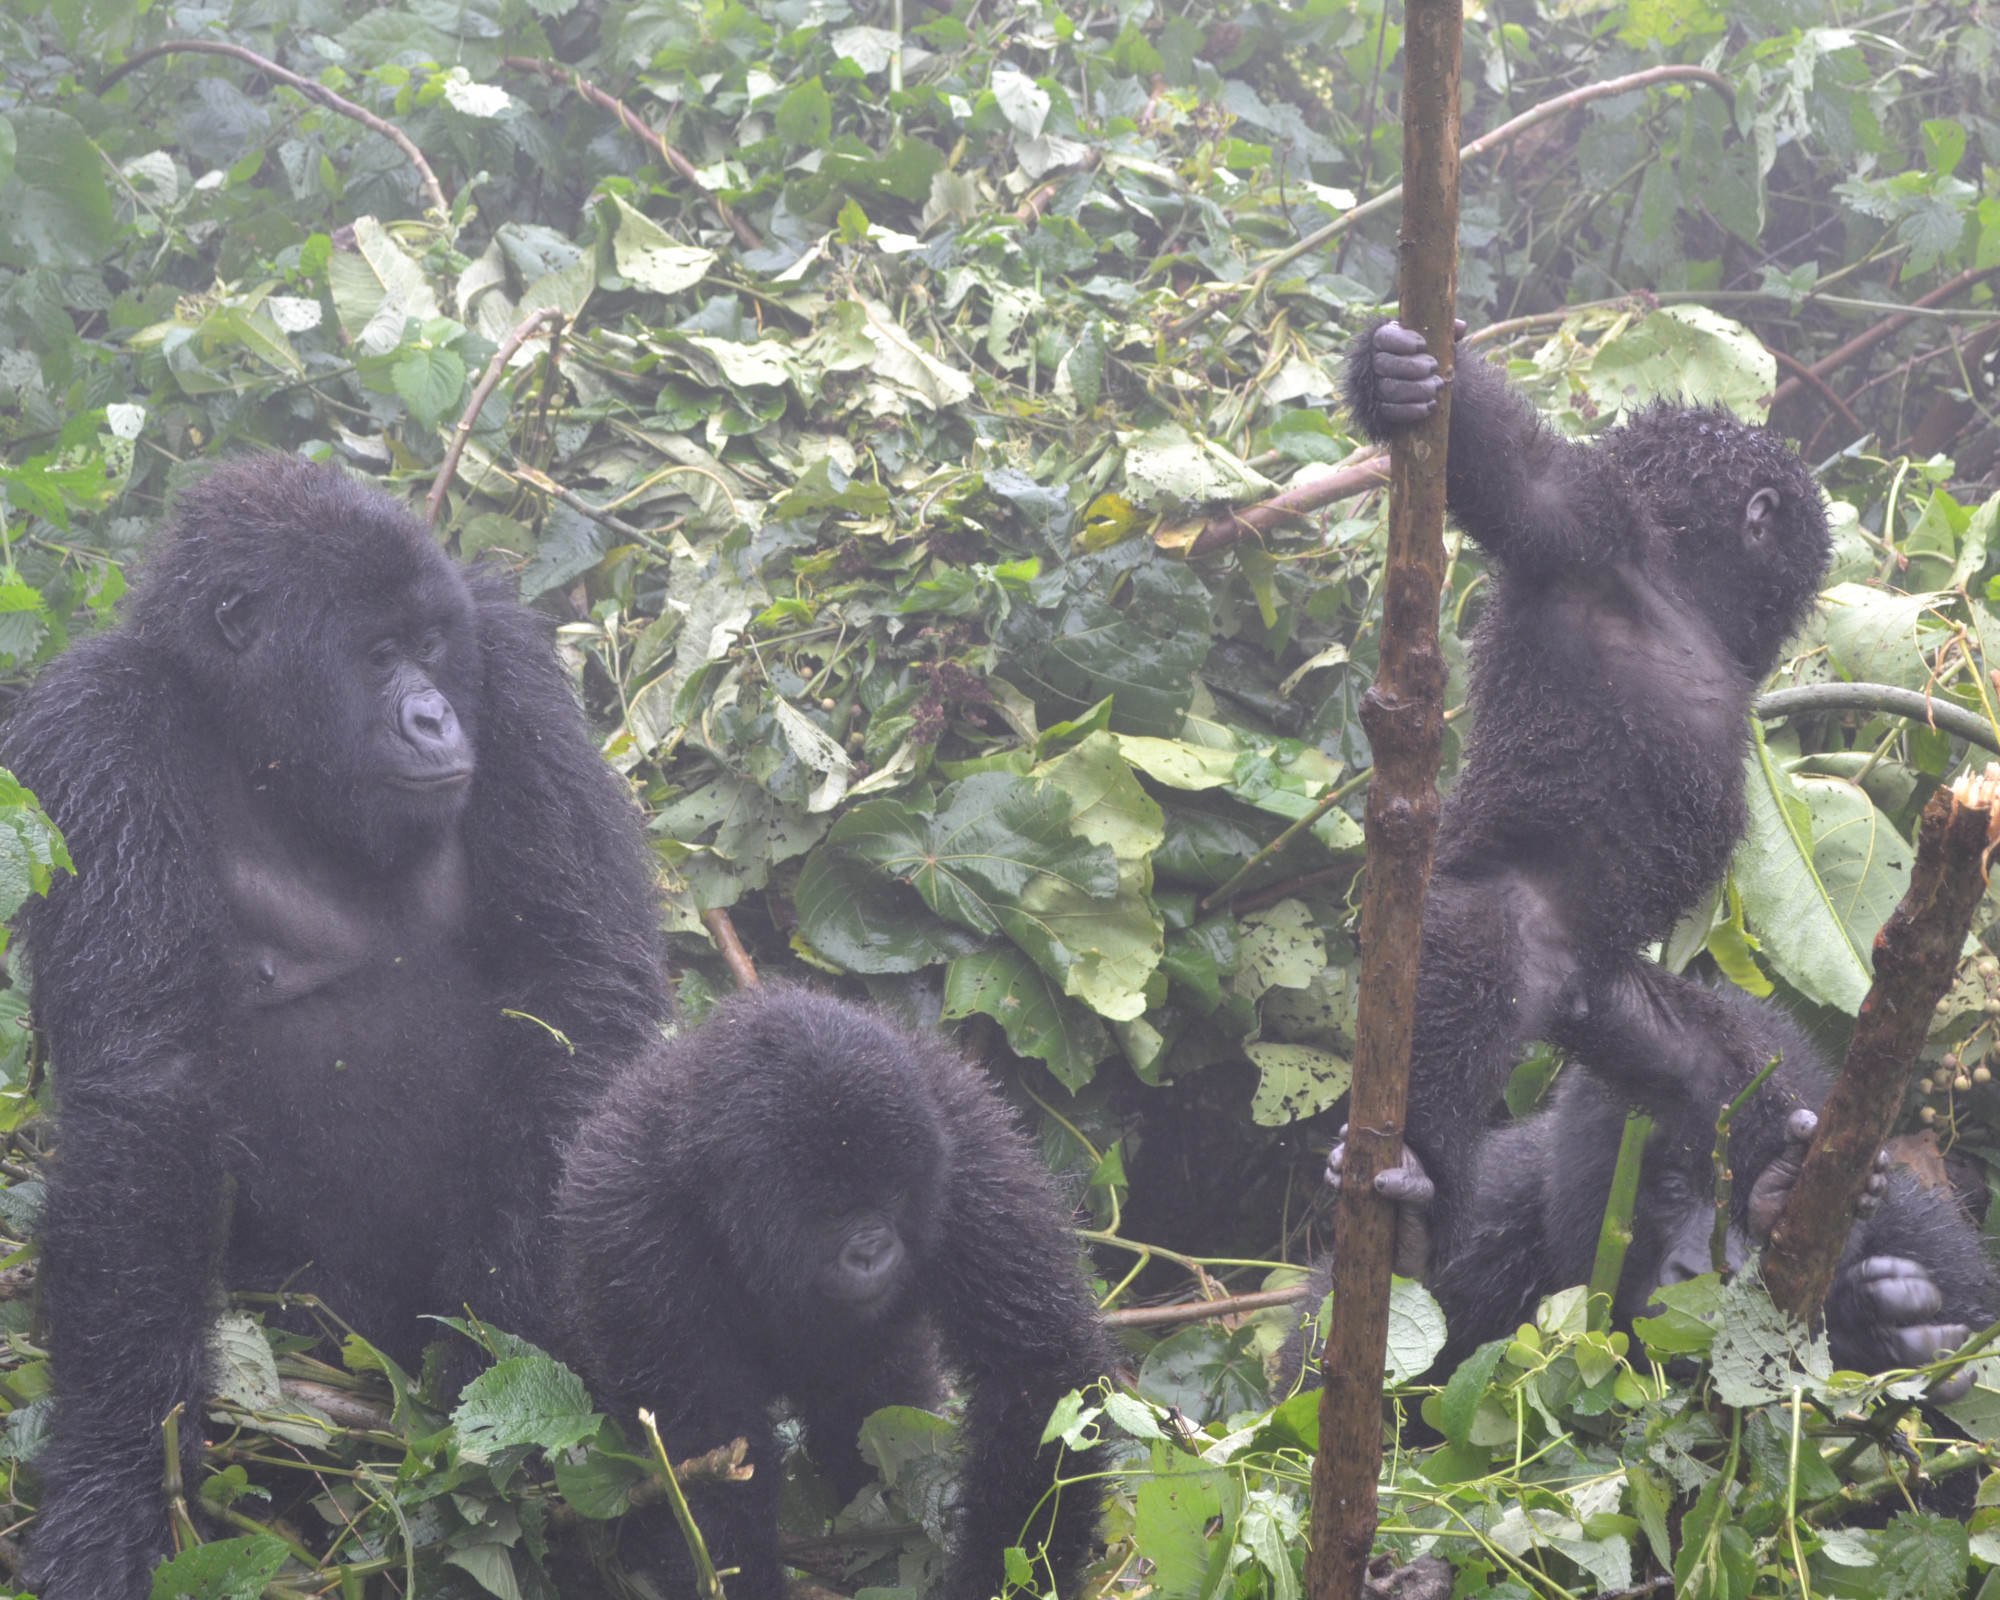 Photo 3: Parc Virunga en RDC